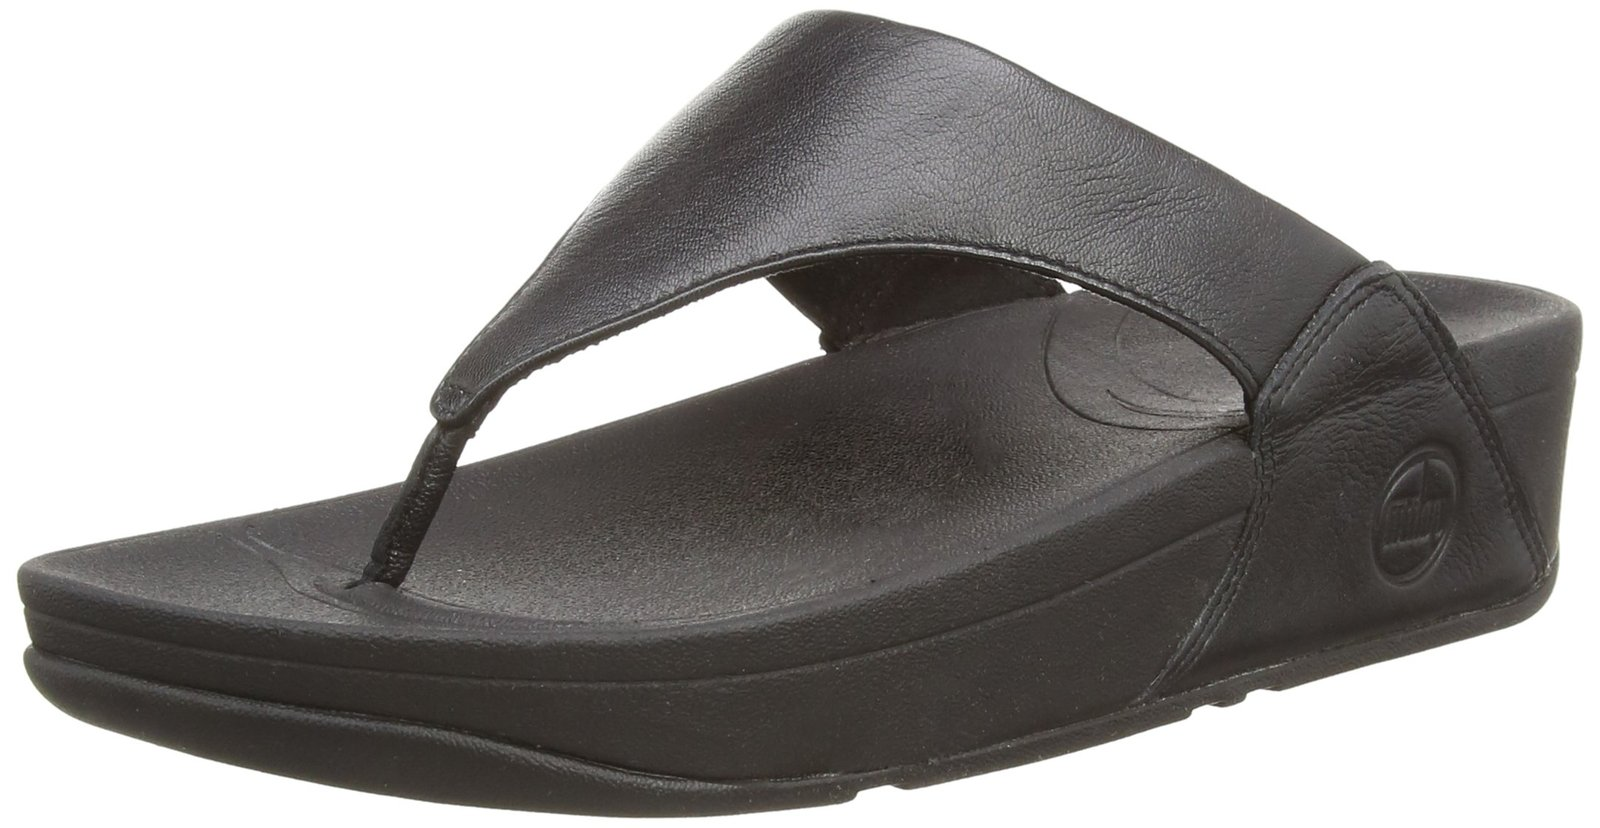 FitFlop Women's Lulu Thong Sandal,Black,8 M US